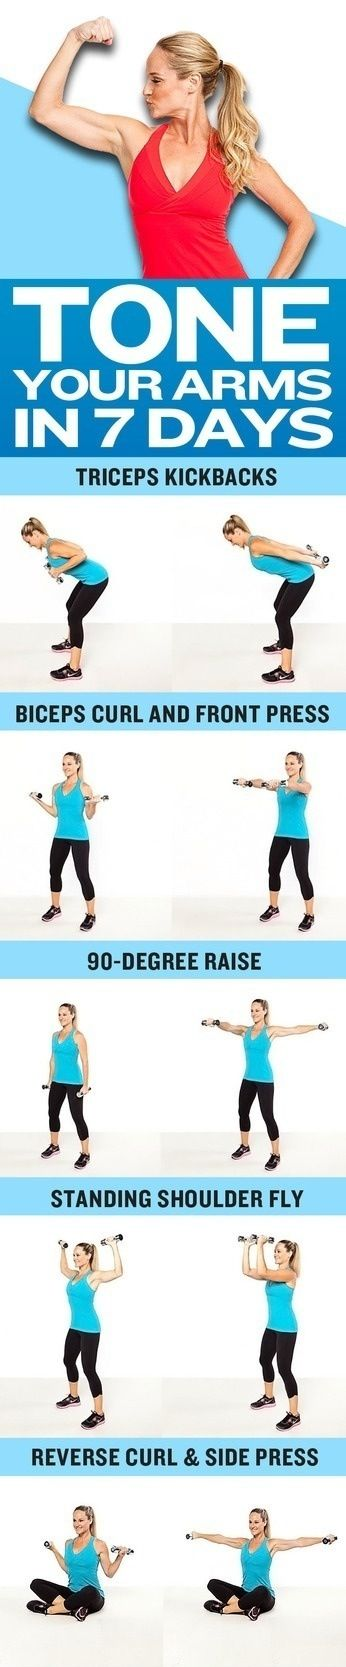 Arm toning excercise